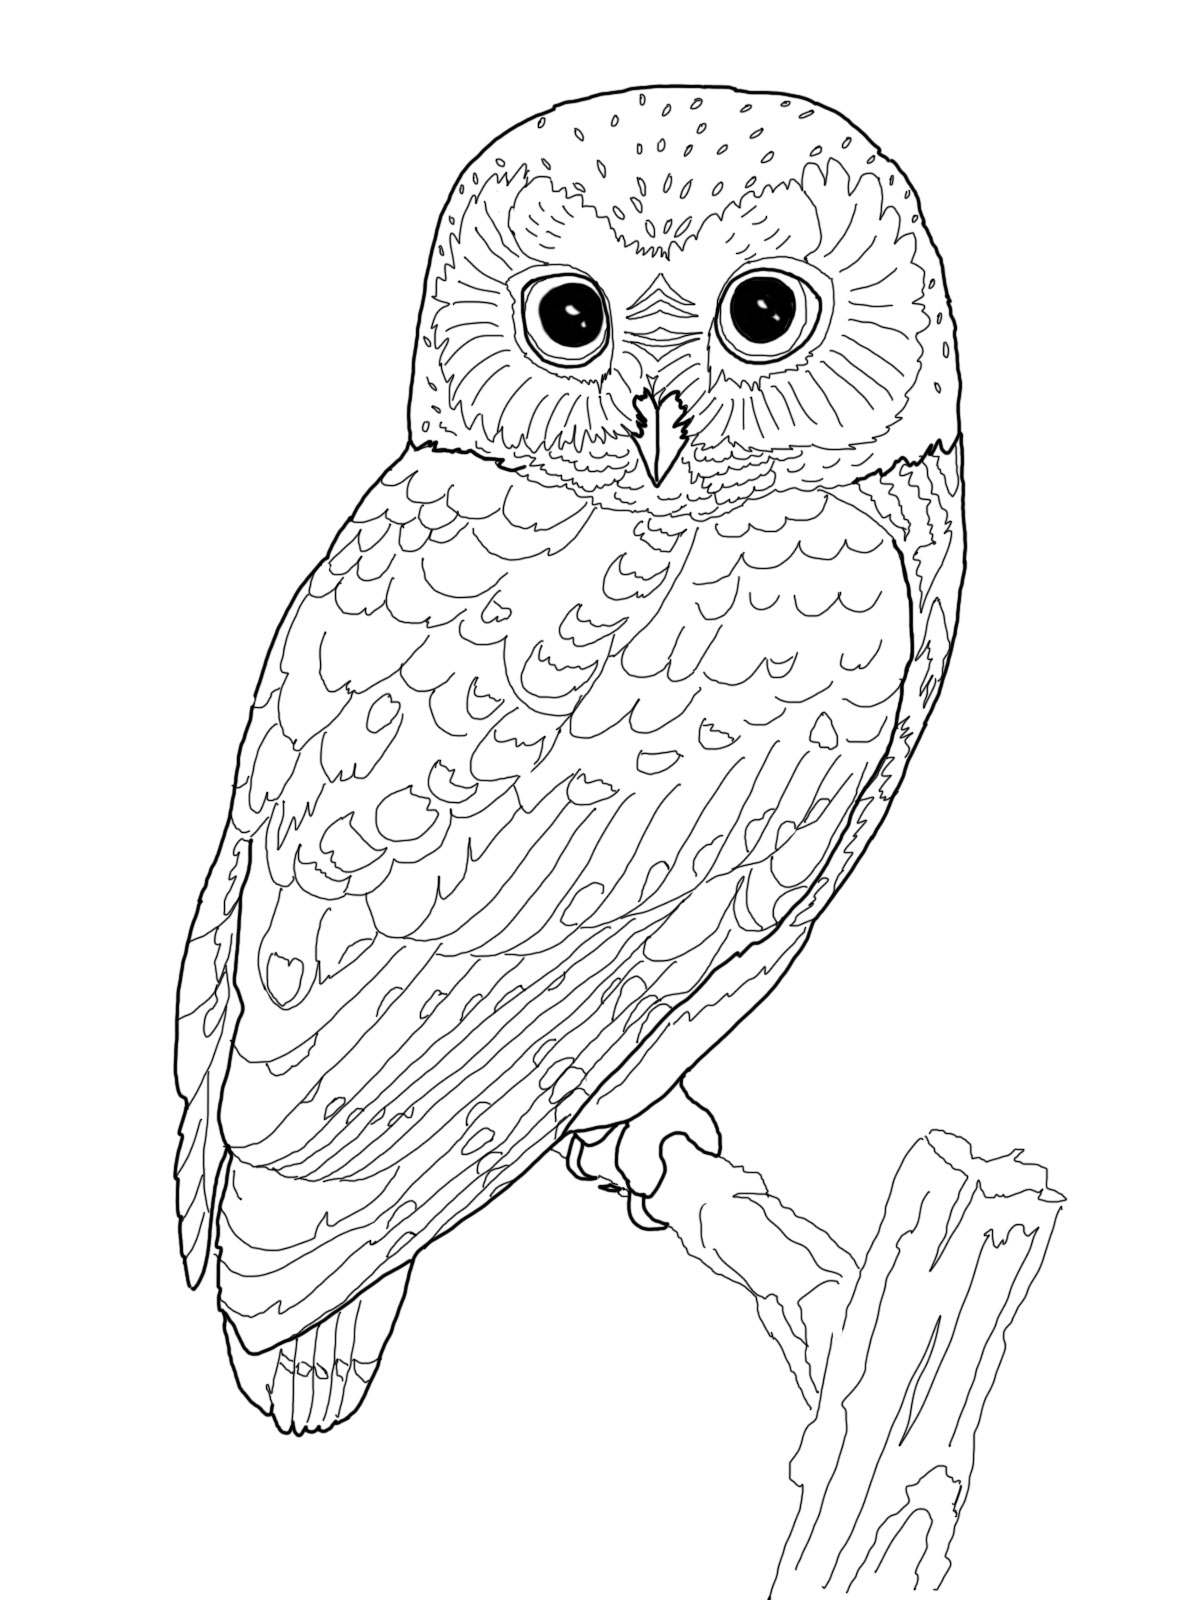 coloring pages owls owl coloring pages for adults free detailed owl coloring coloring pages owls